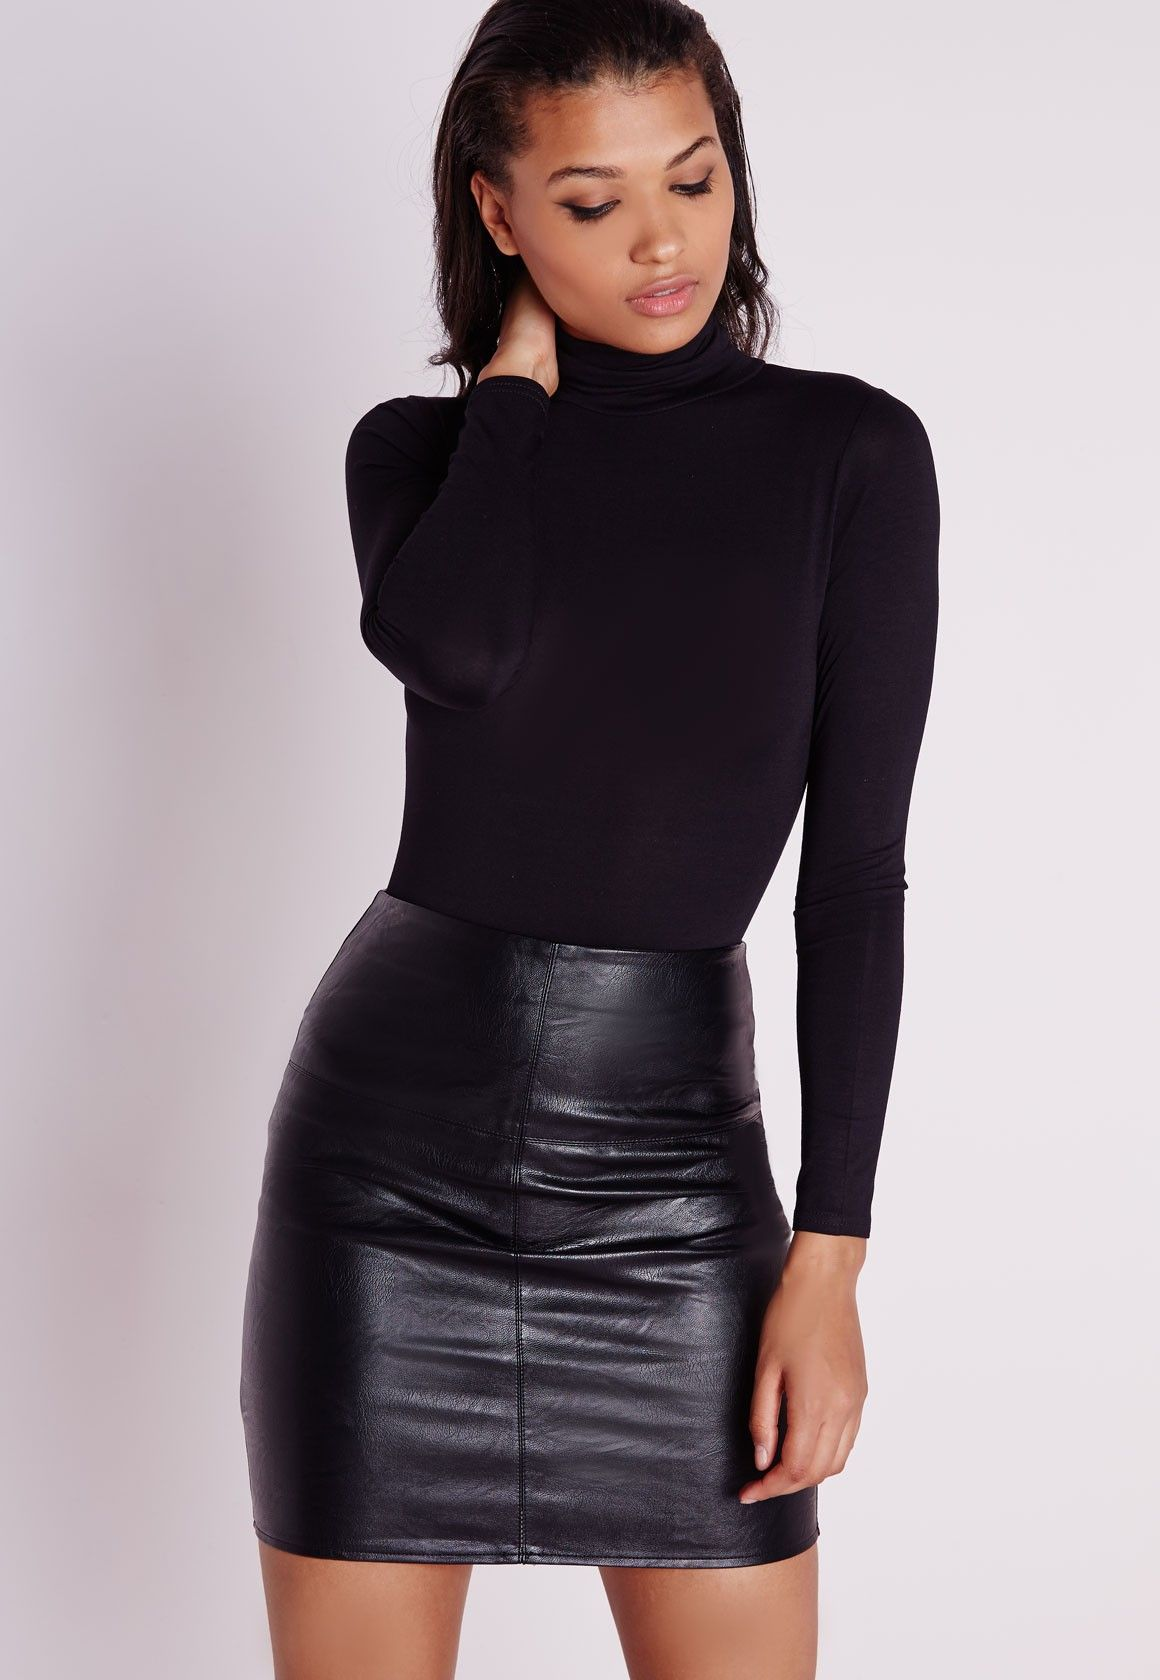 30de4015df Black Leather Mini Skirt Uk - Redskirtz